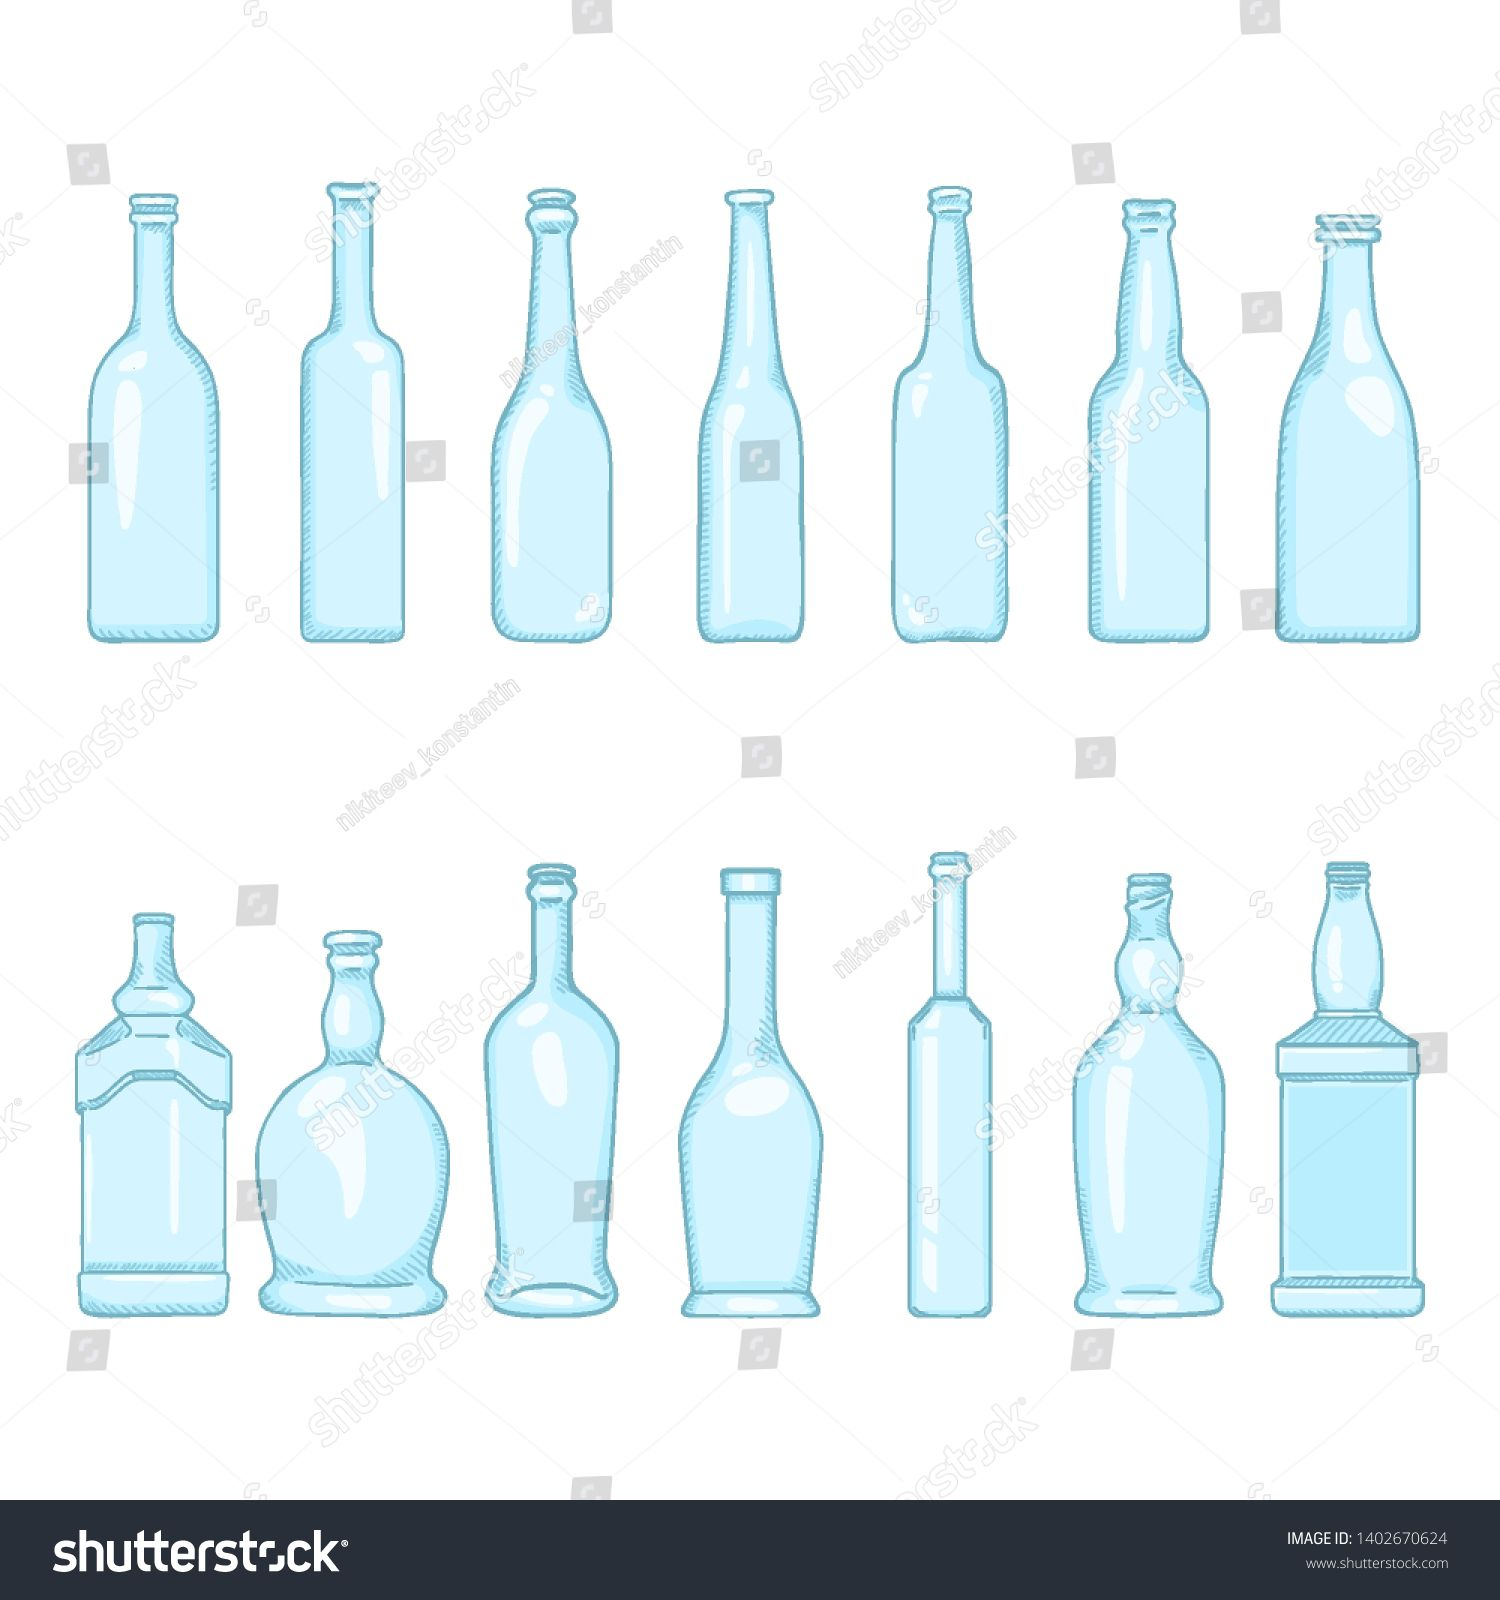 Vector Set Of Cartoon Empty Blue Glass Bottles Illustrations On Isolated White Background Ad Sponsored Empt Blue Glass Bottles Blue Glass Cartoons Vector